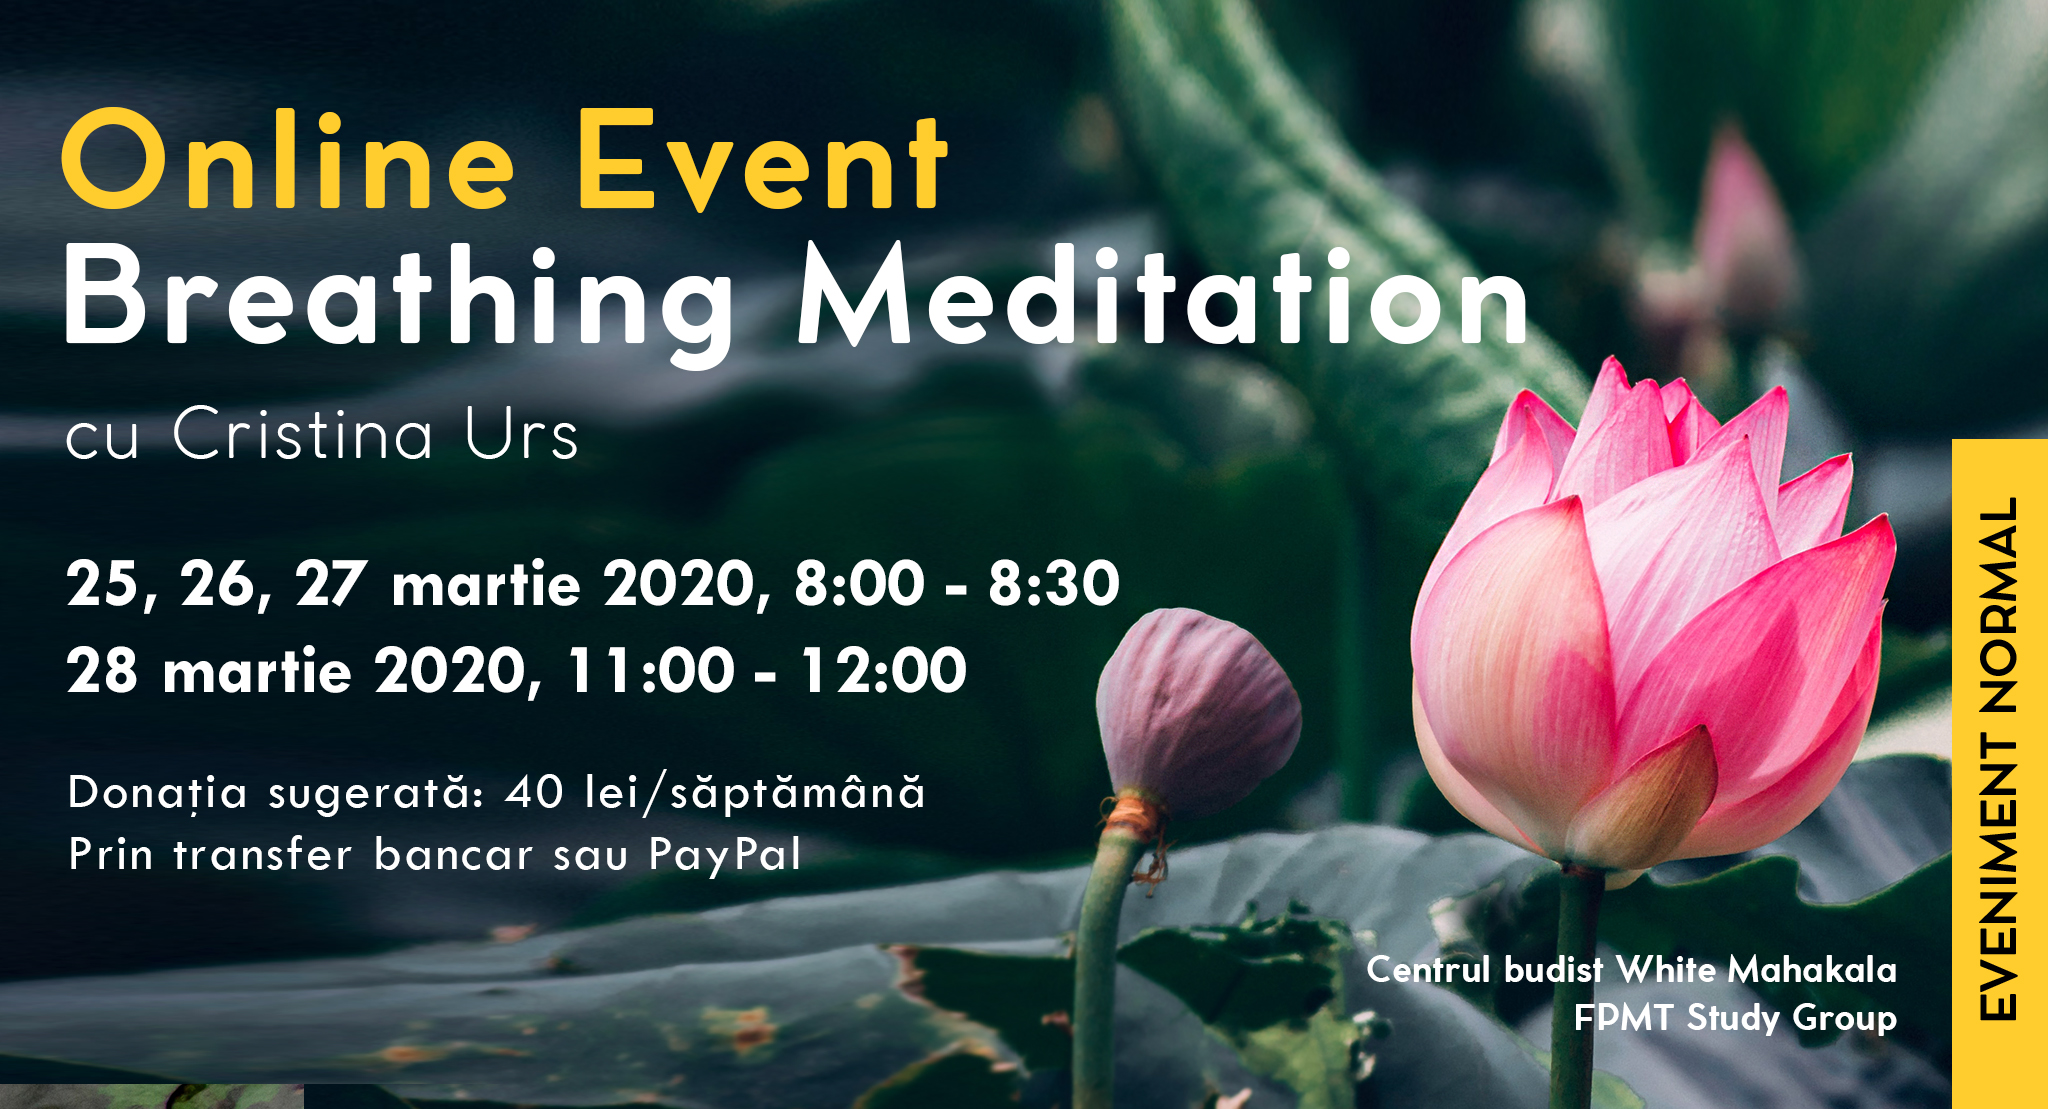 Online Event Breathing Meditation cu Cristina